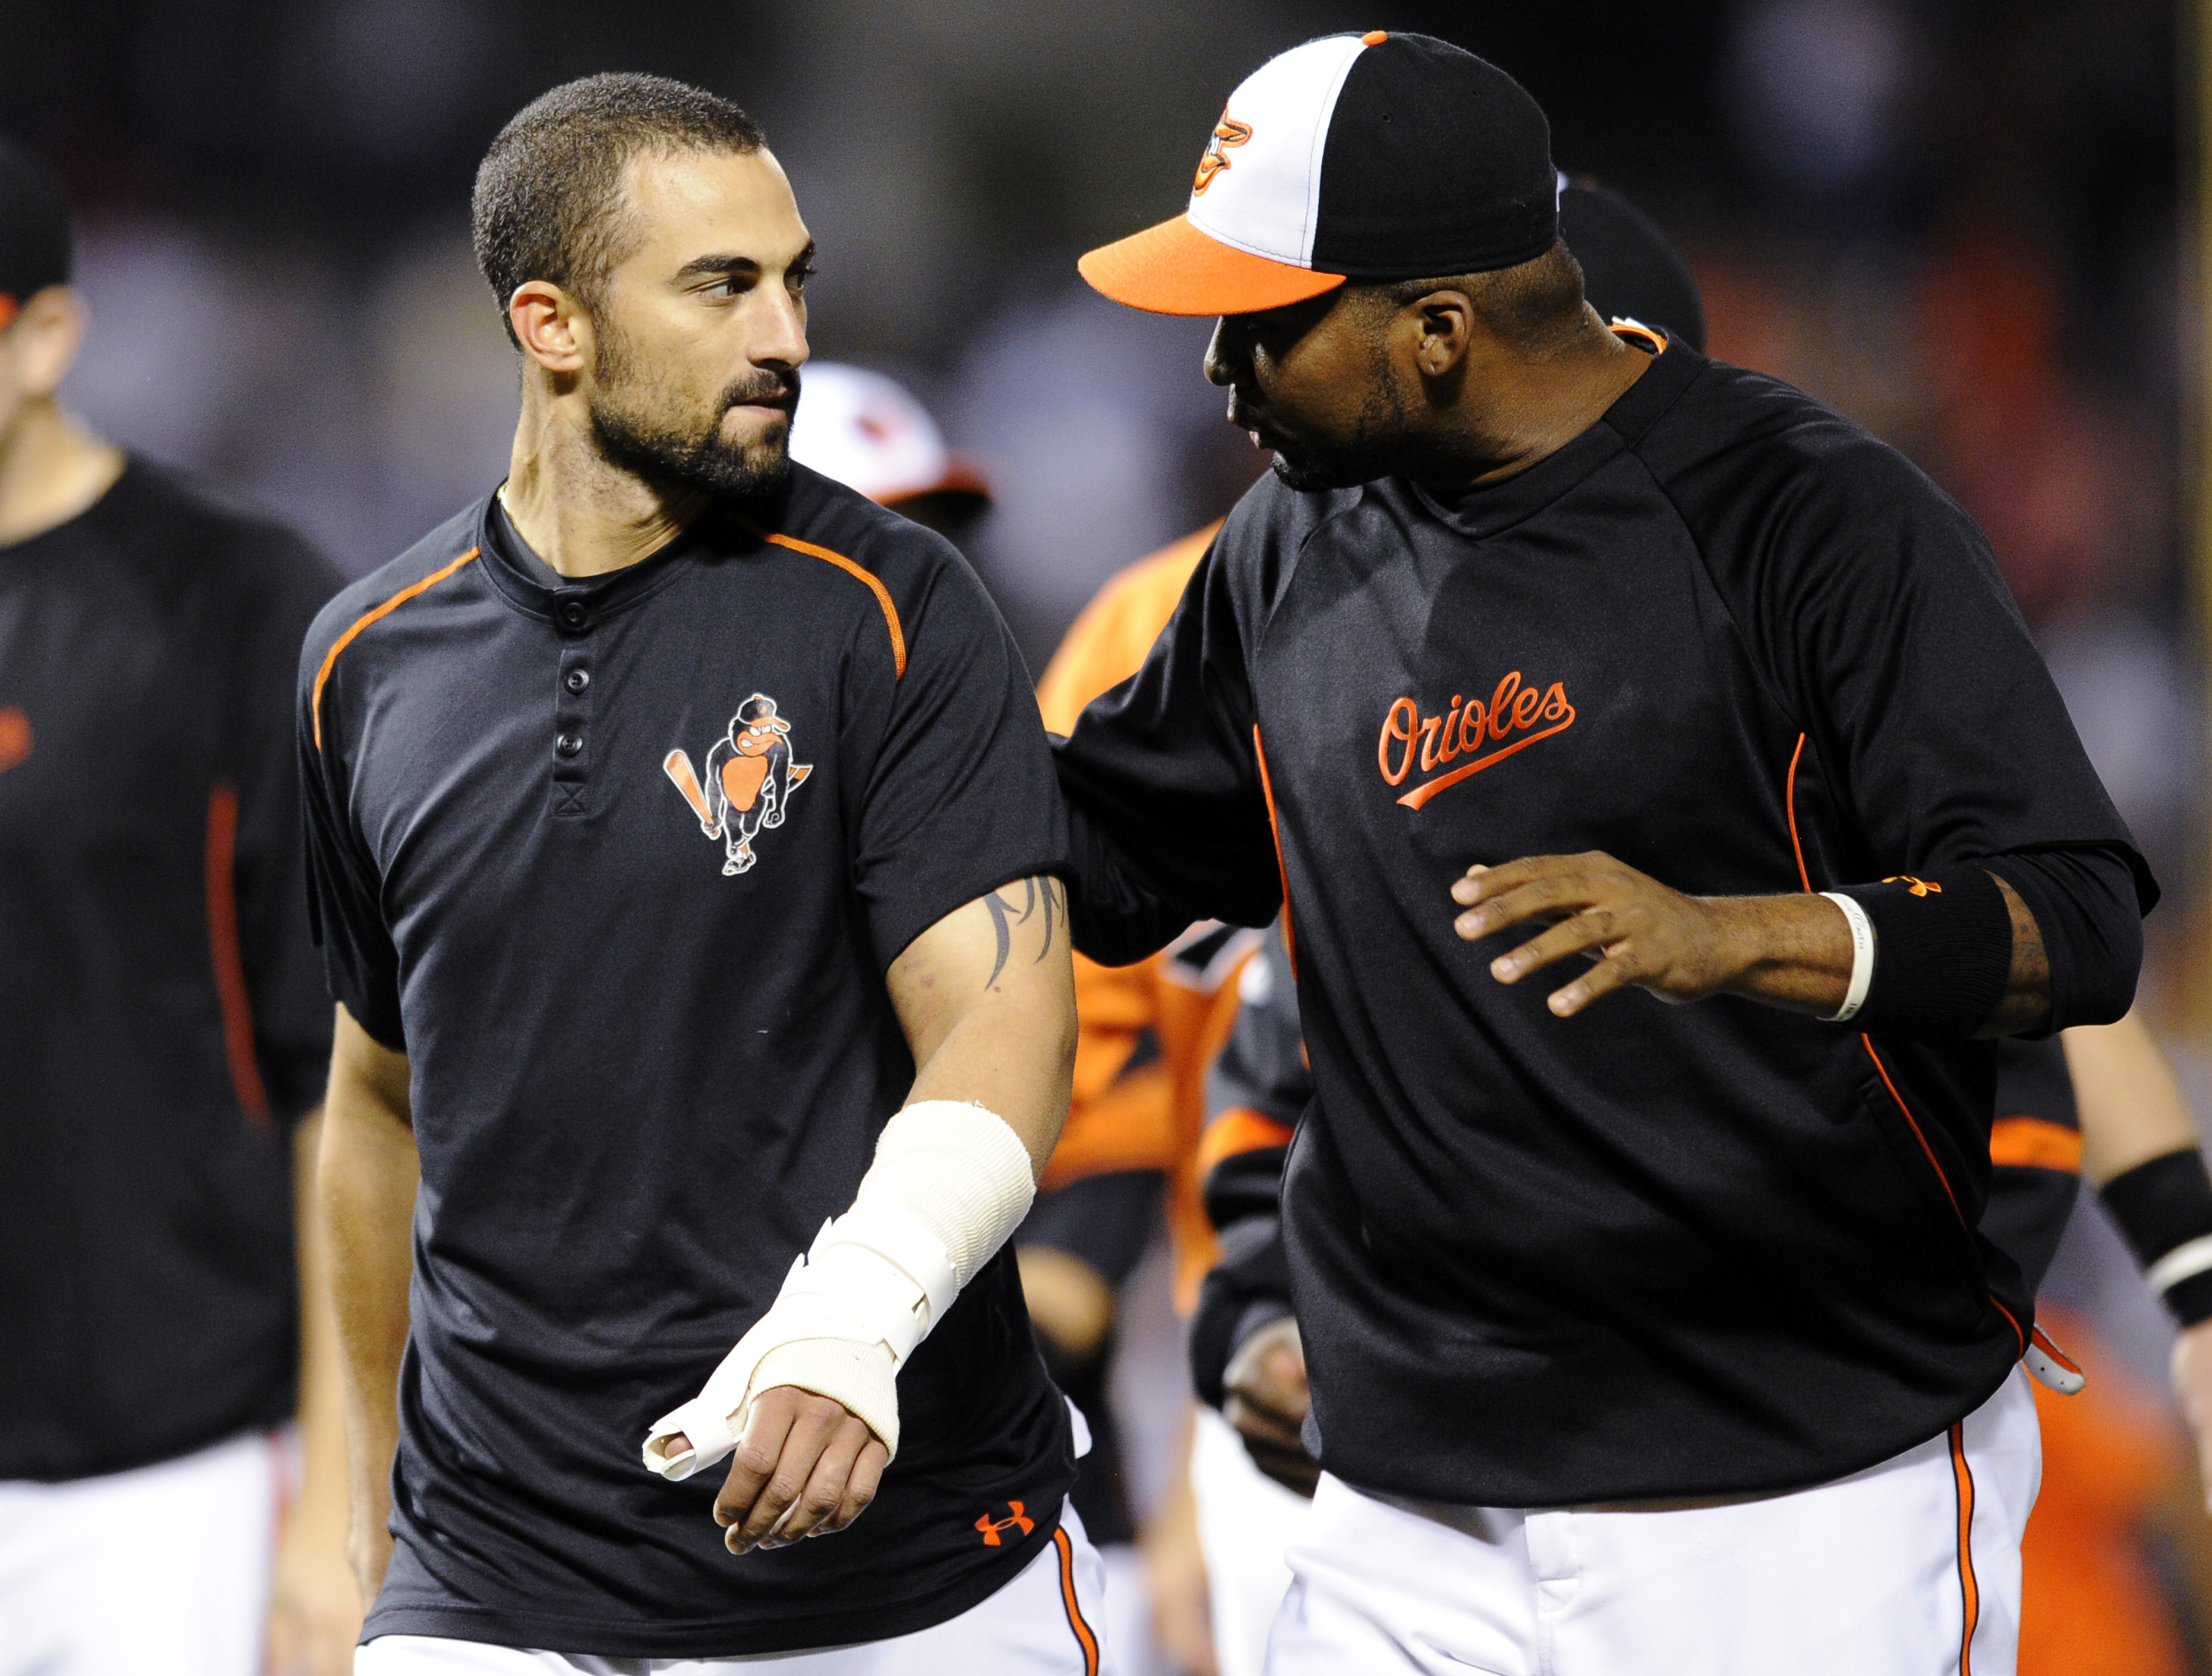 Nick Markakis, left, leaves the field with his thumb wrapped after celebrating the Baltimore's 5-4 win. (AP)